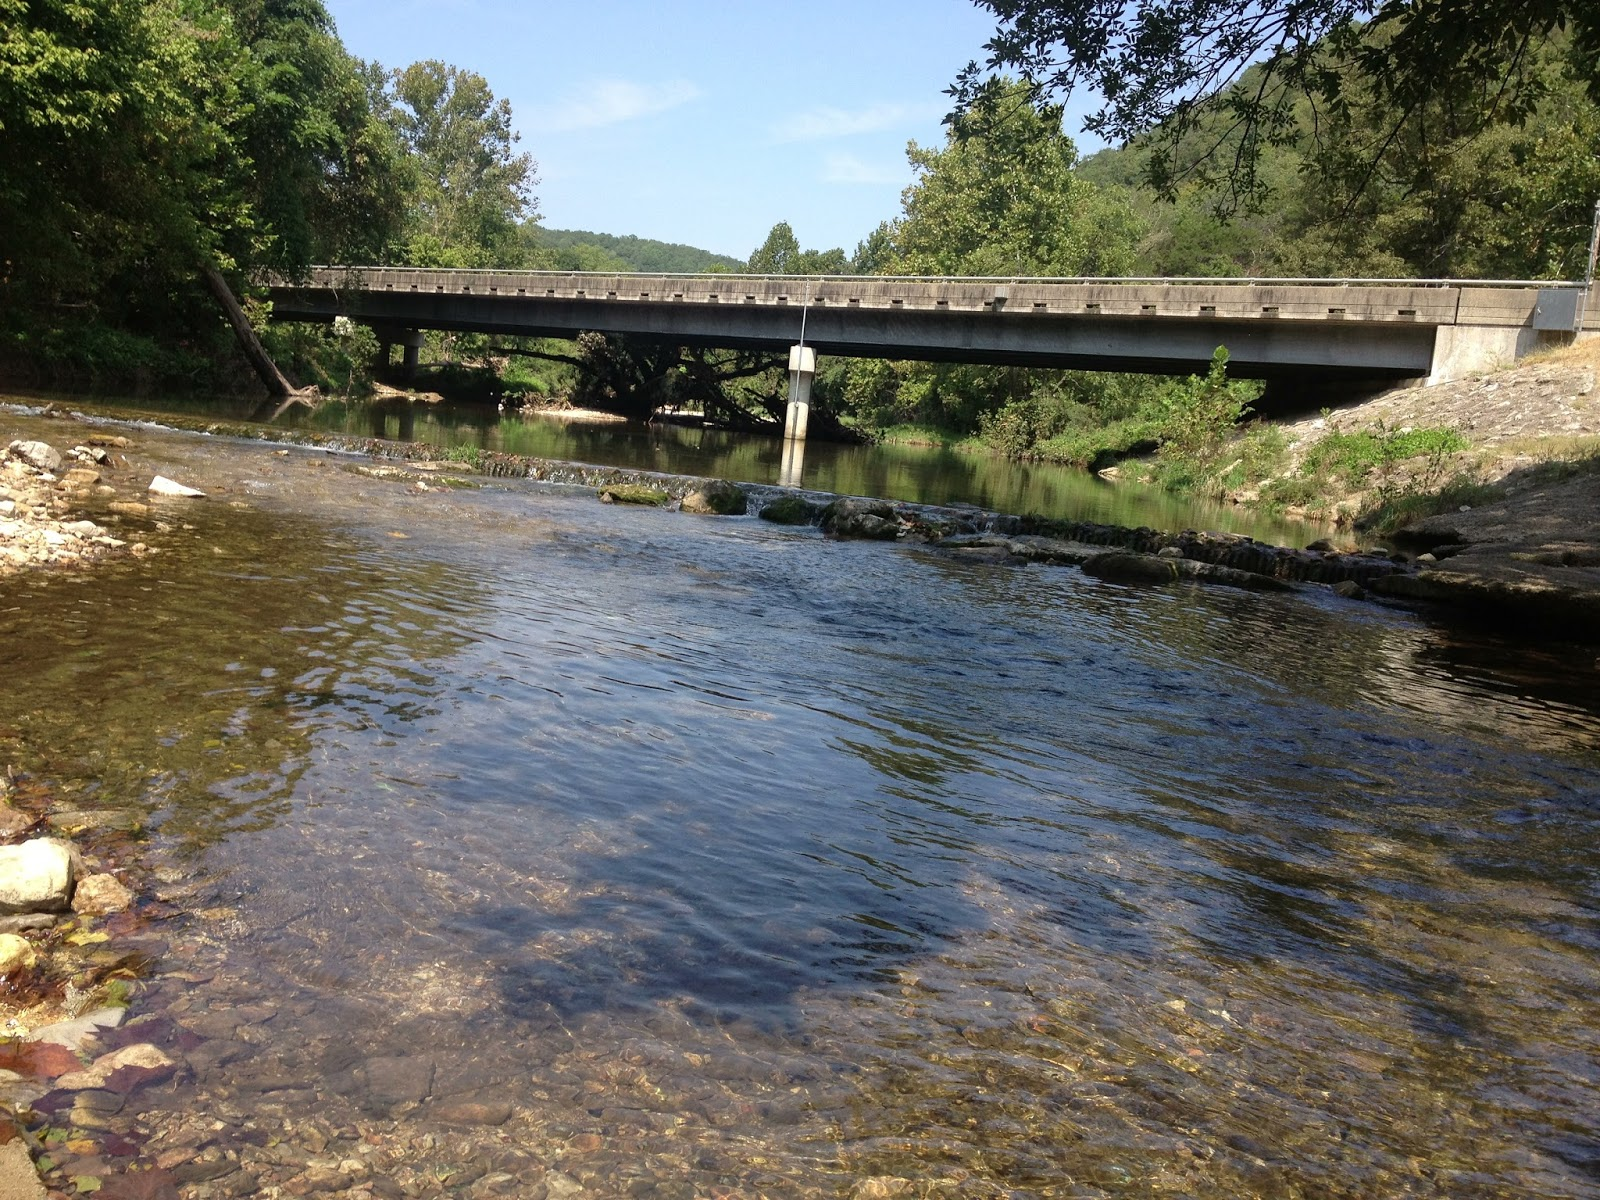 Miles to go before i sleep roaring river state park for Roaring river fish hatchery